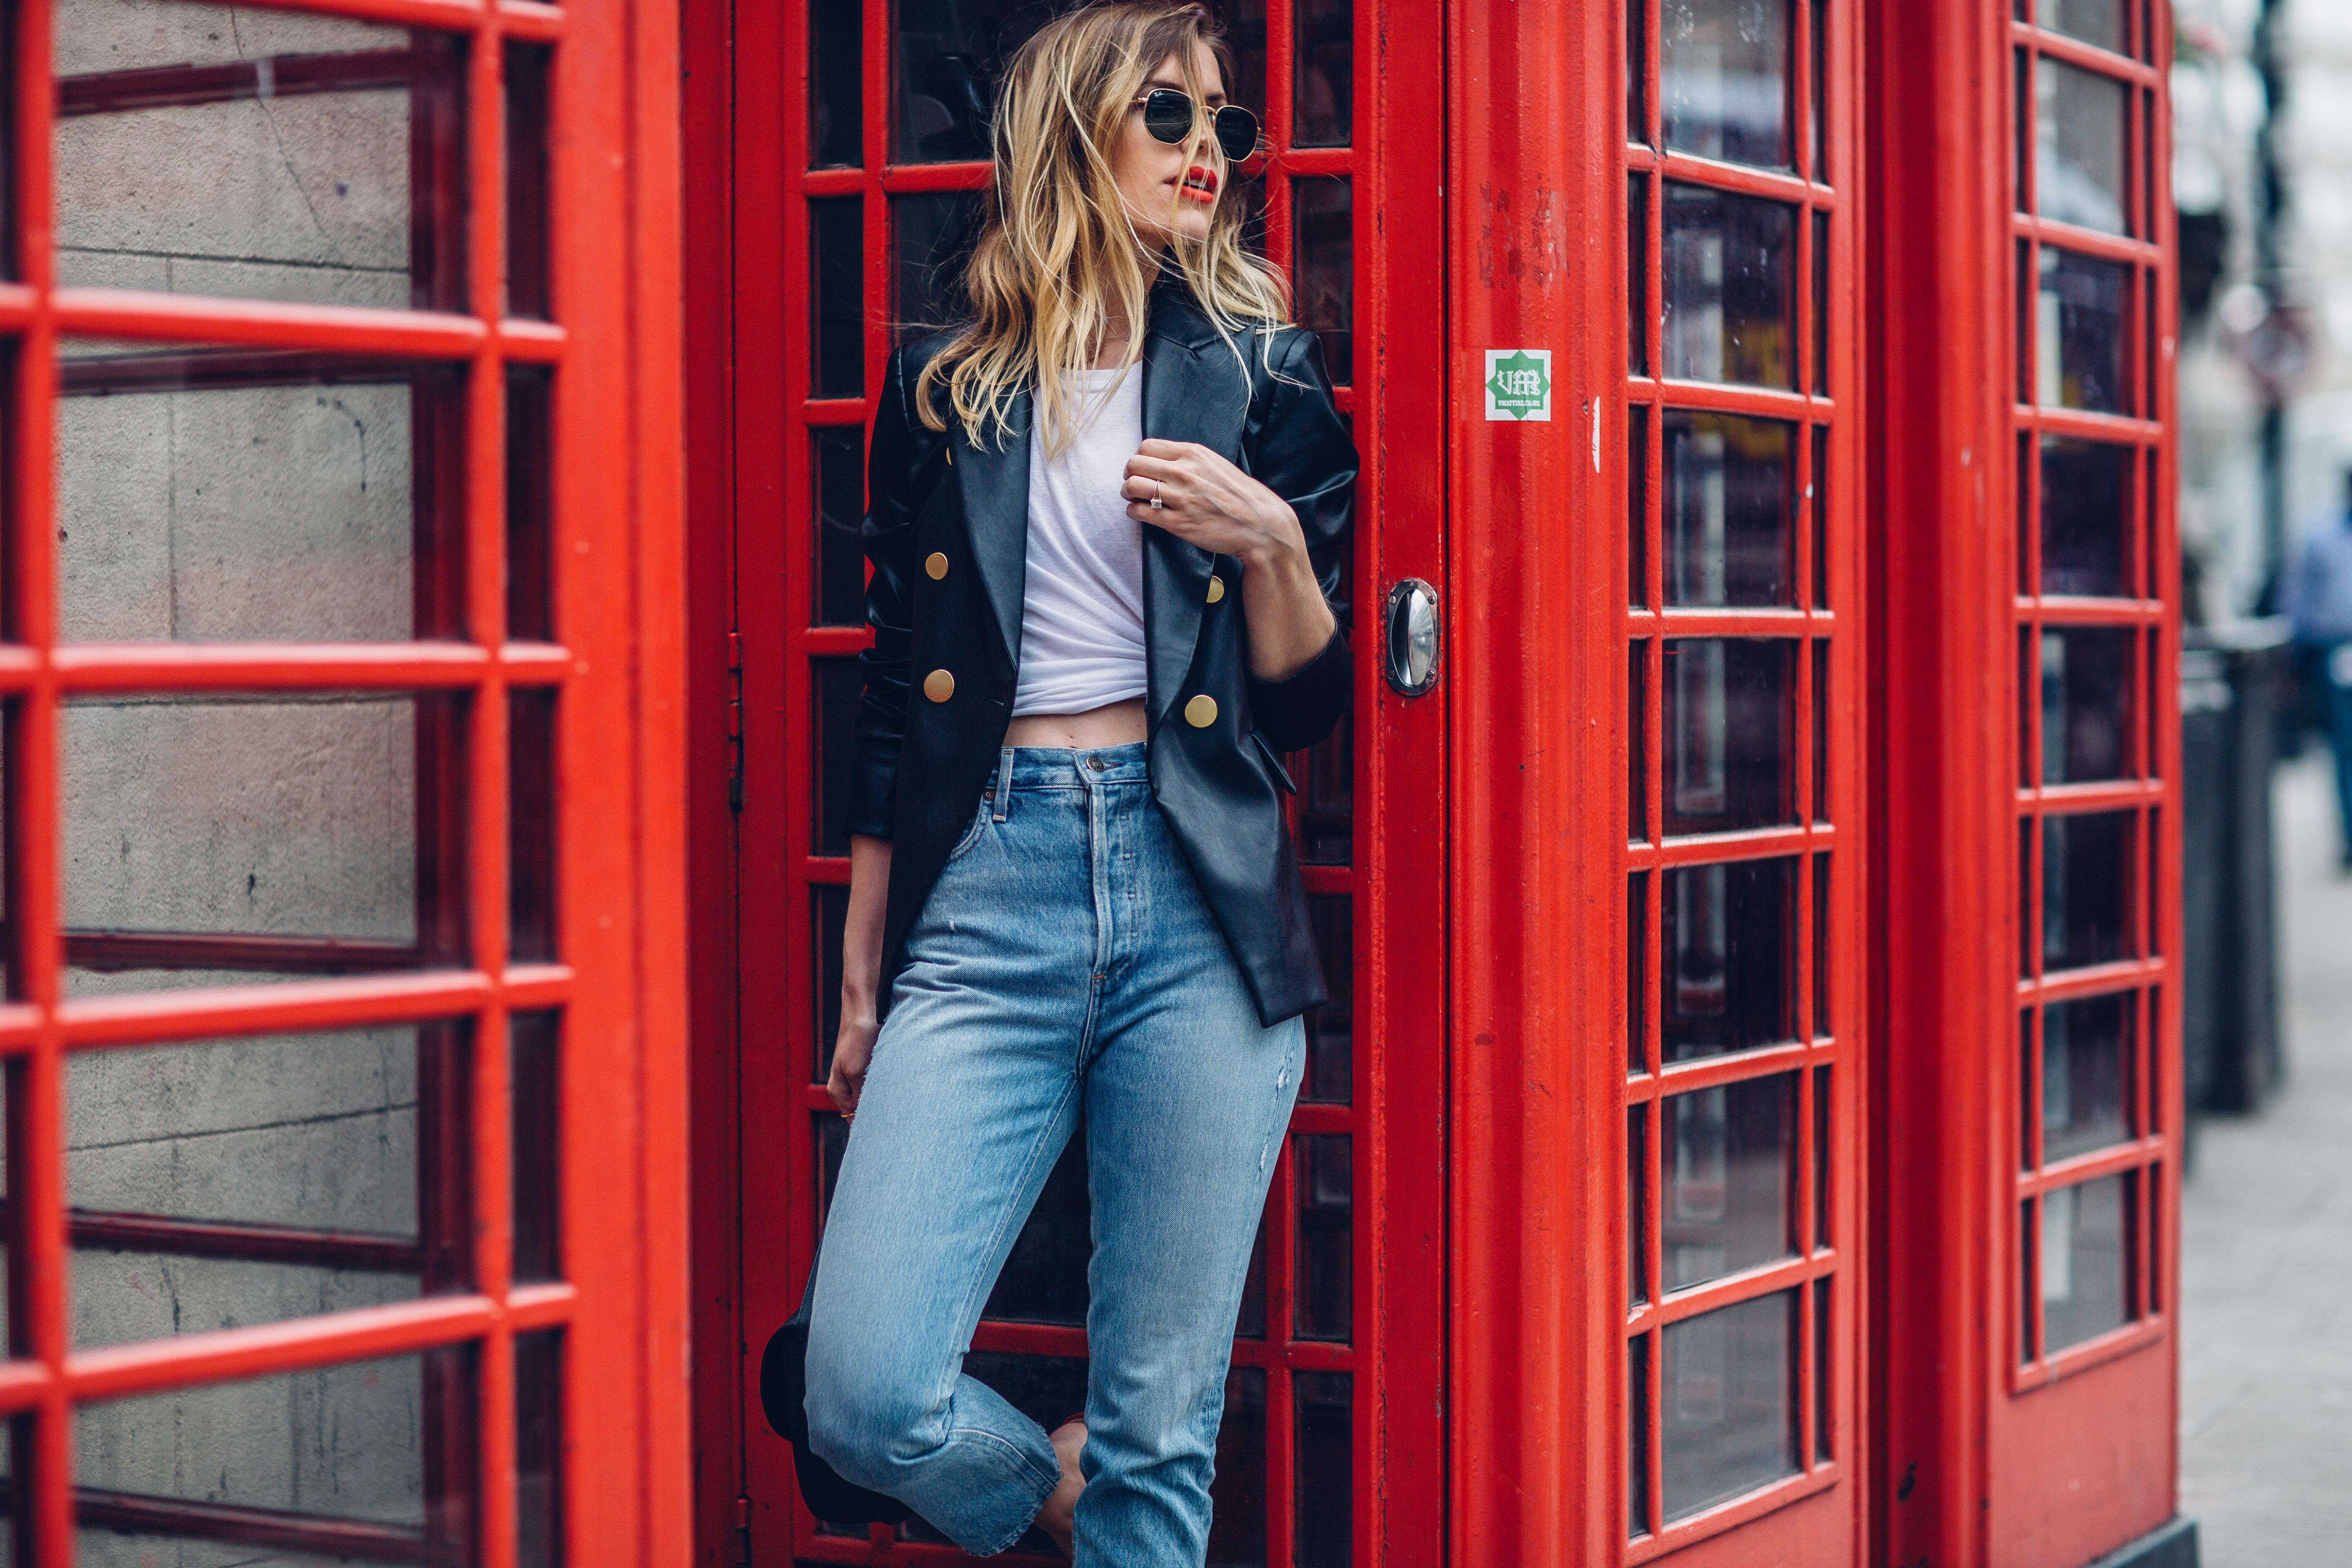 ellie mae, london blogger, london